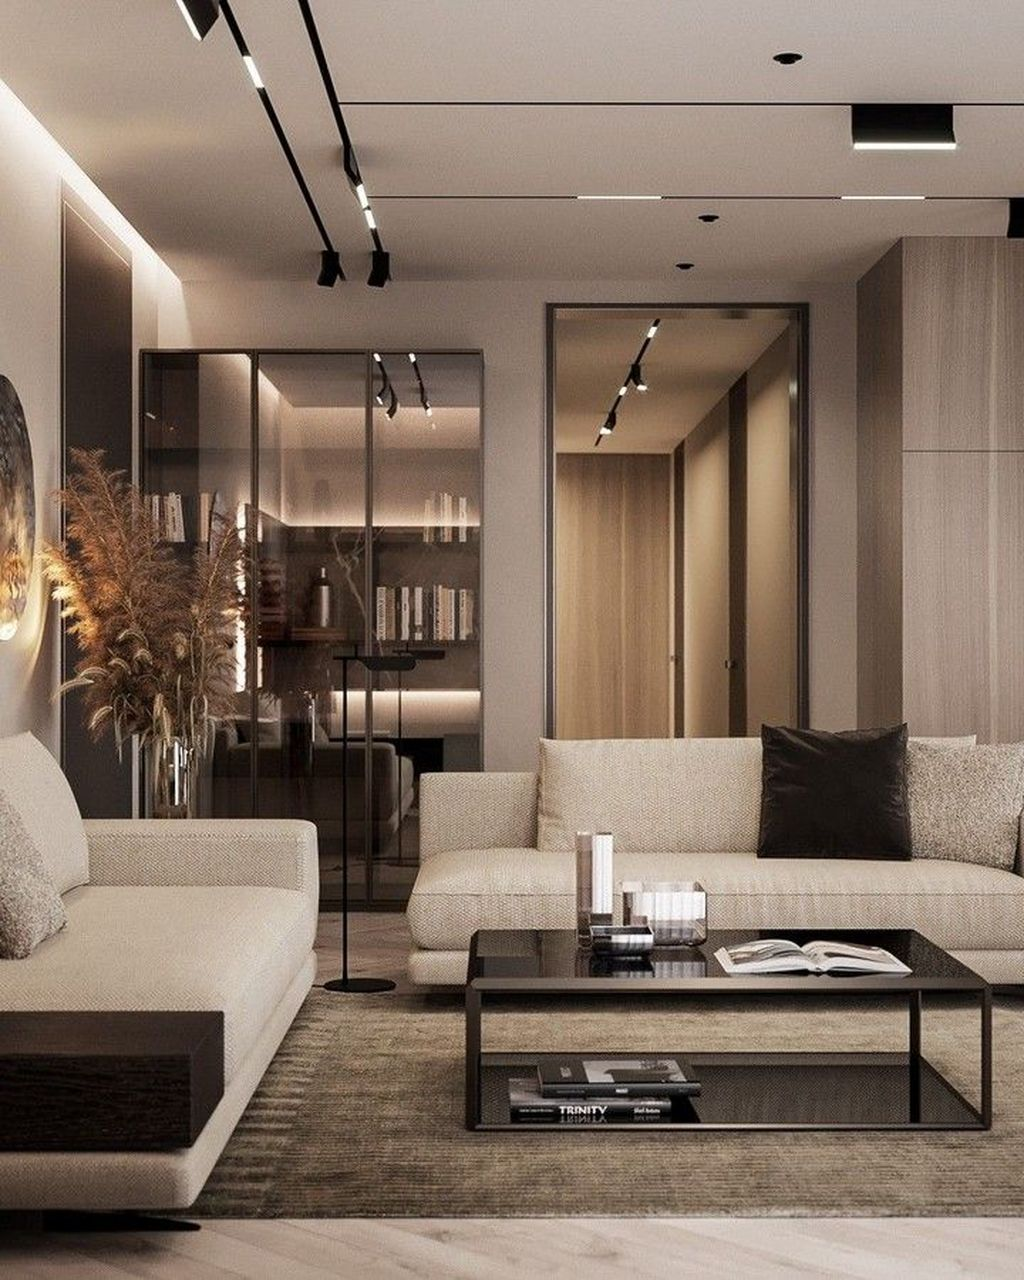 Admirable Modern Interior Design Ideas You Never Seen Before 02